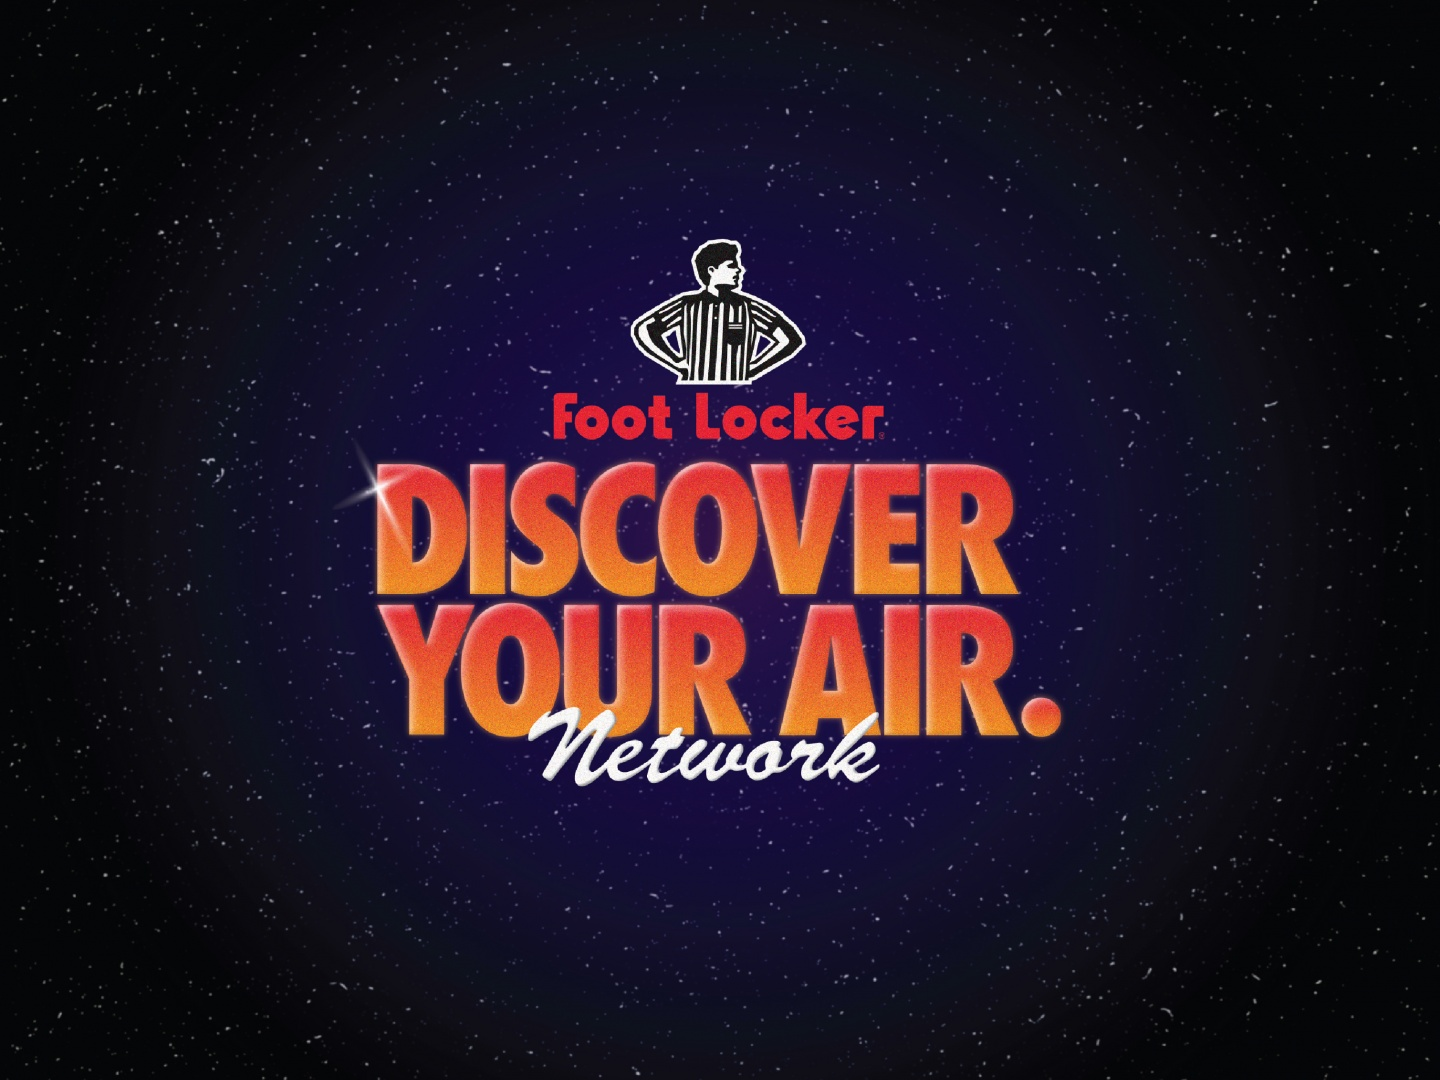 Discover Your Air Network  Thumbnail